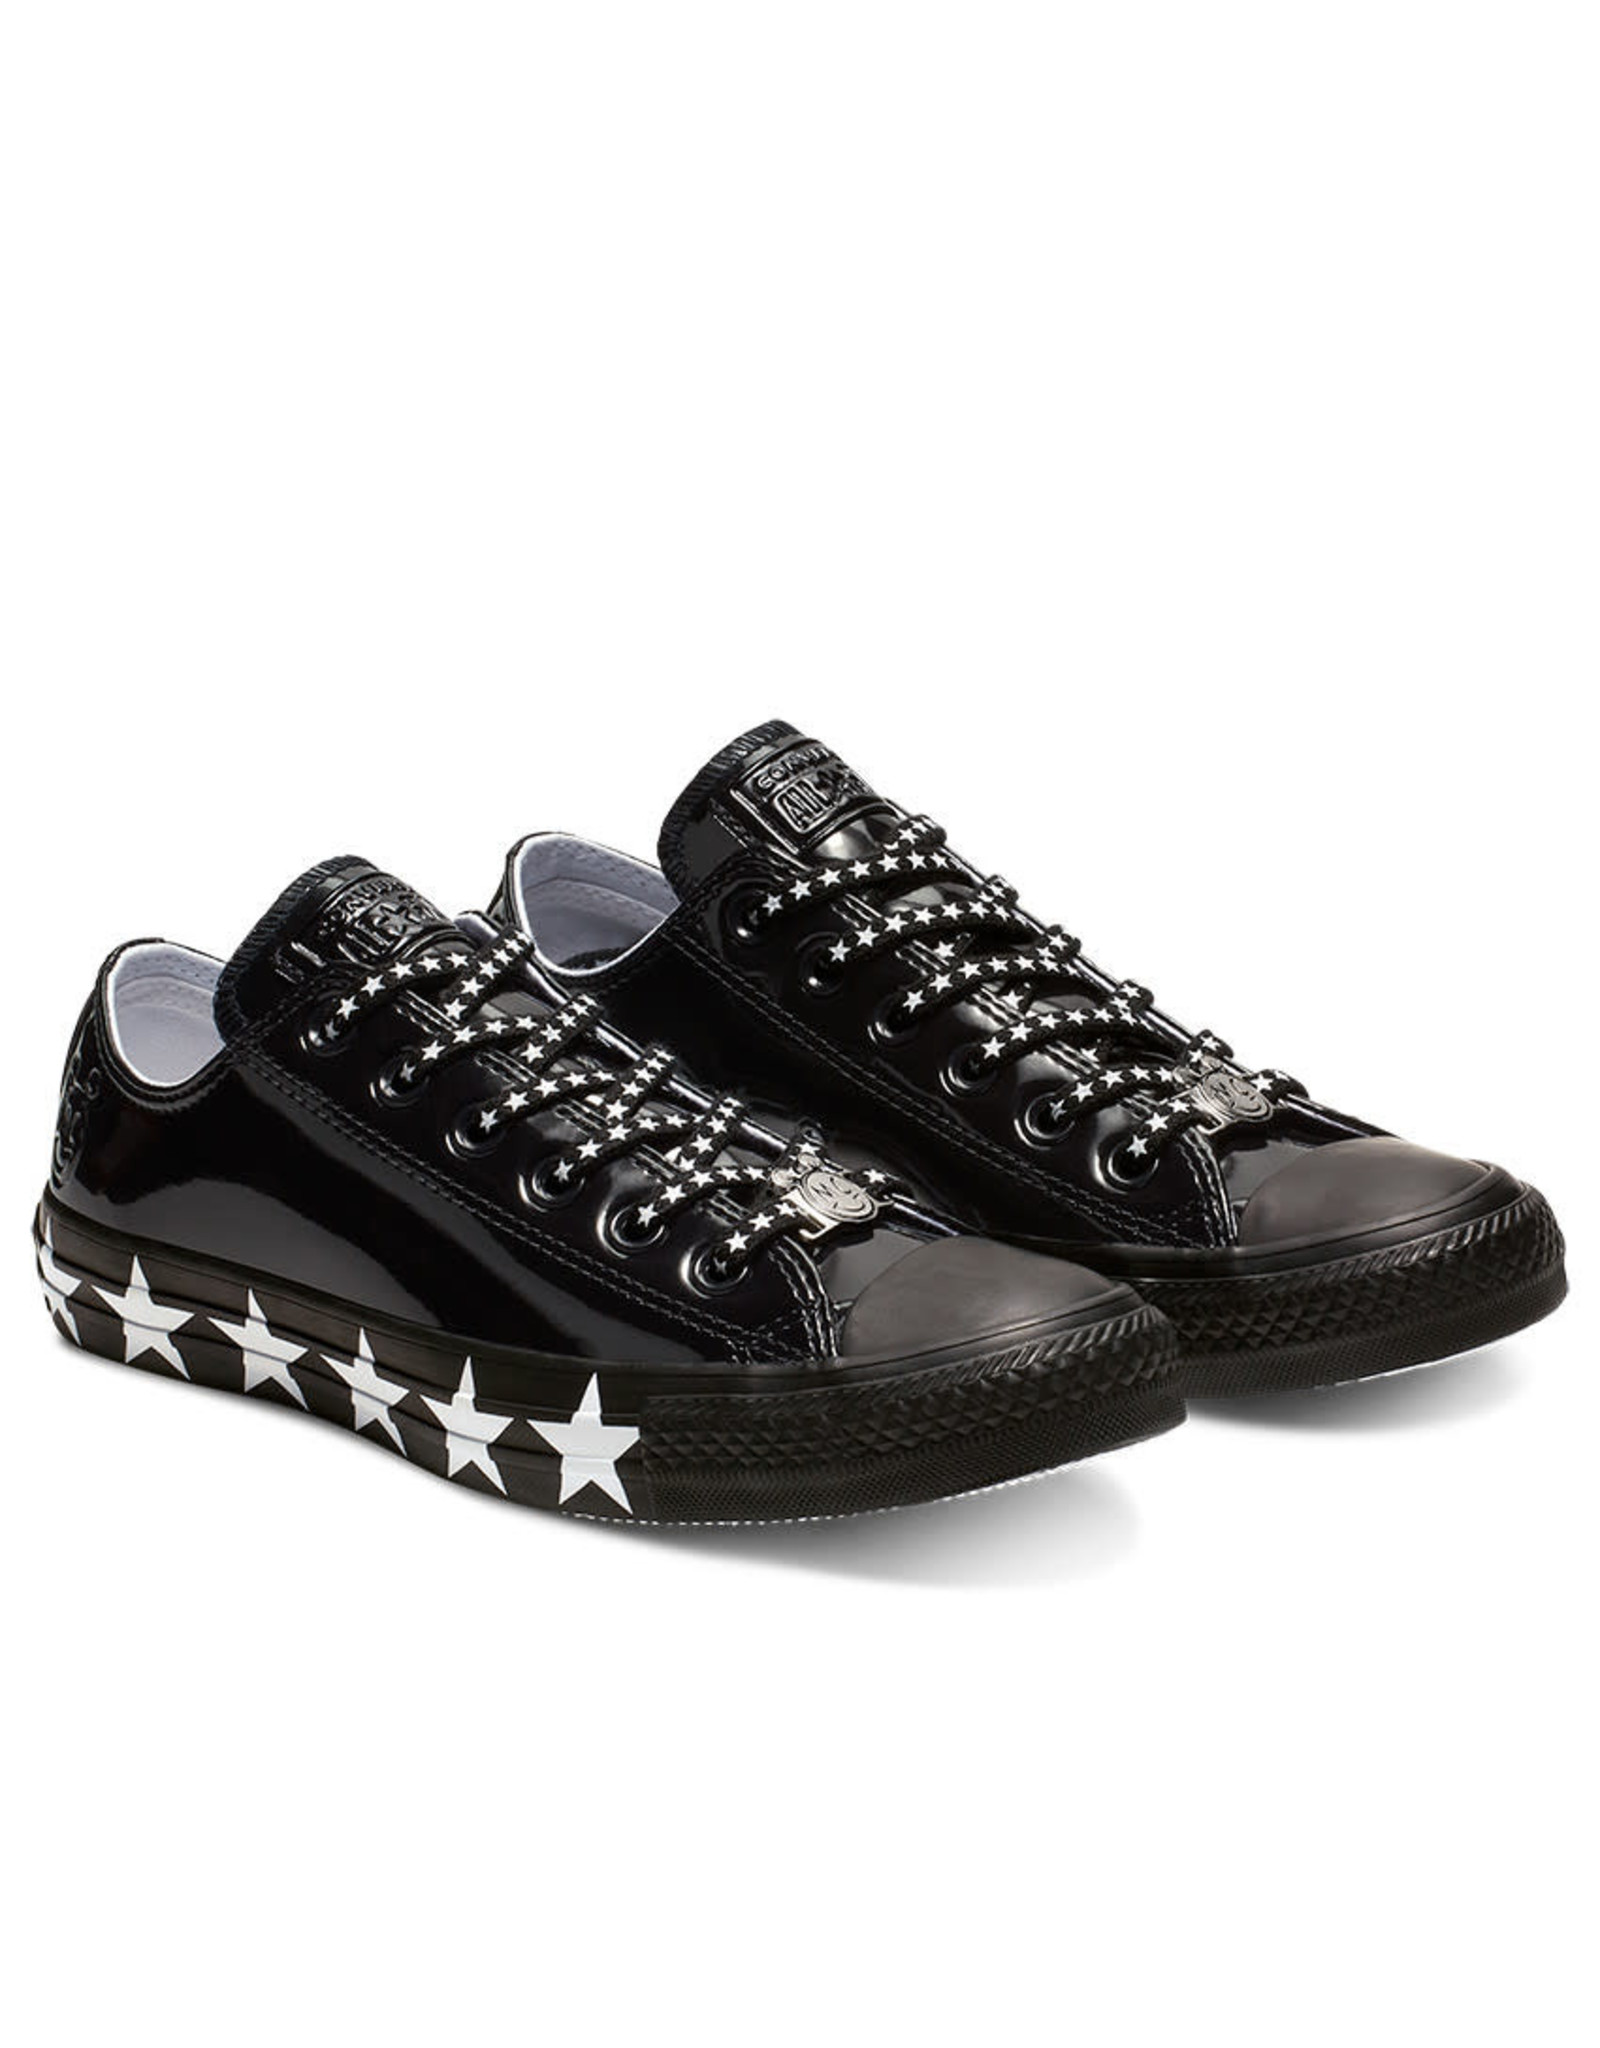 CONVERSE CHUCK TAYLOR AS OX MILEY CYRUS CUIR BLACK/WHITE/BLACK CC13MCB-563720C